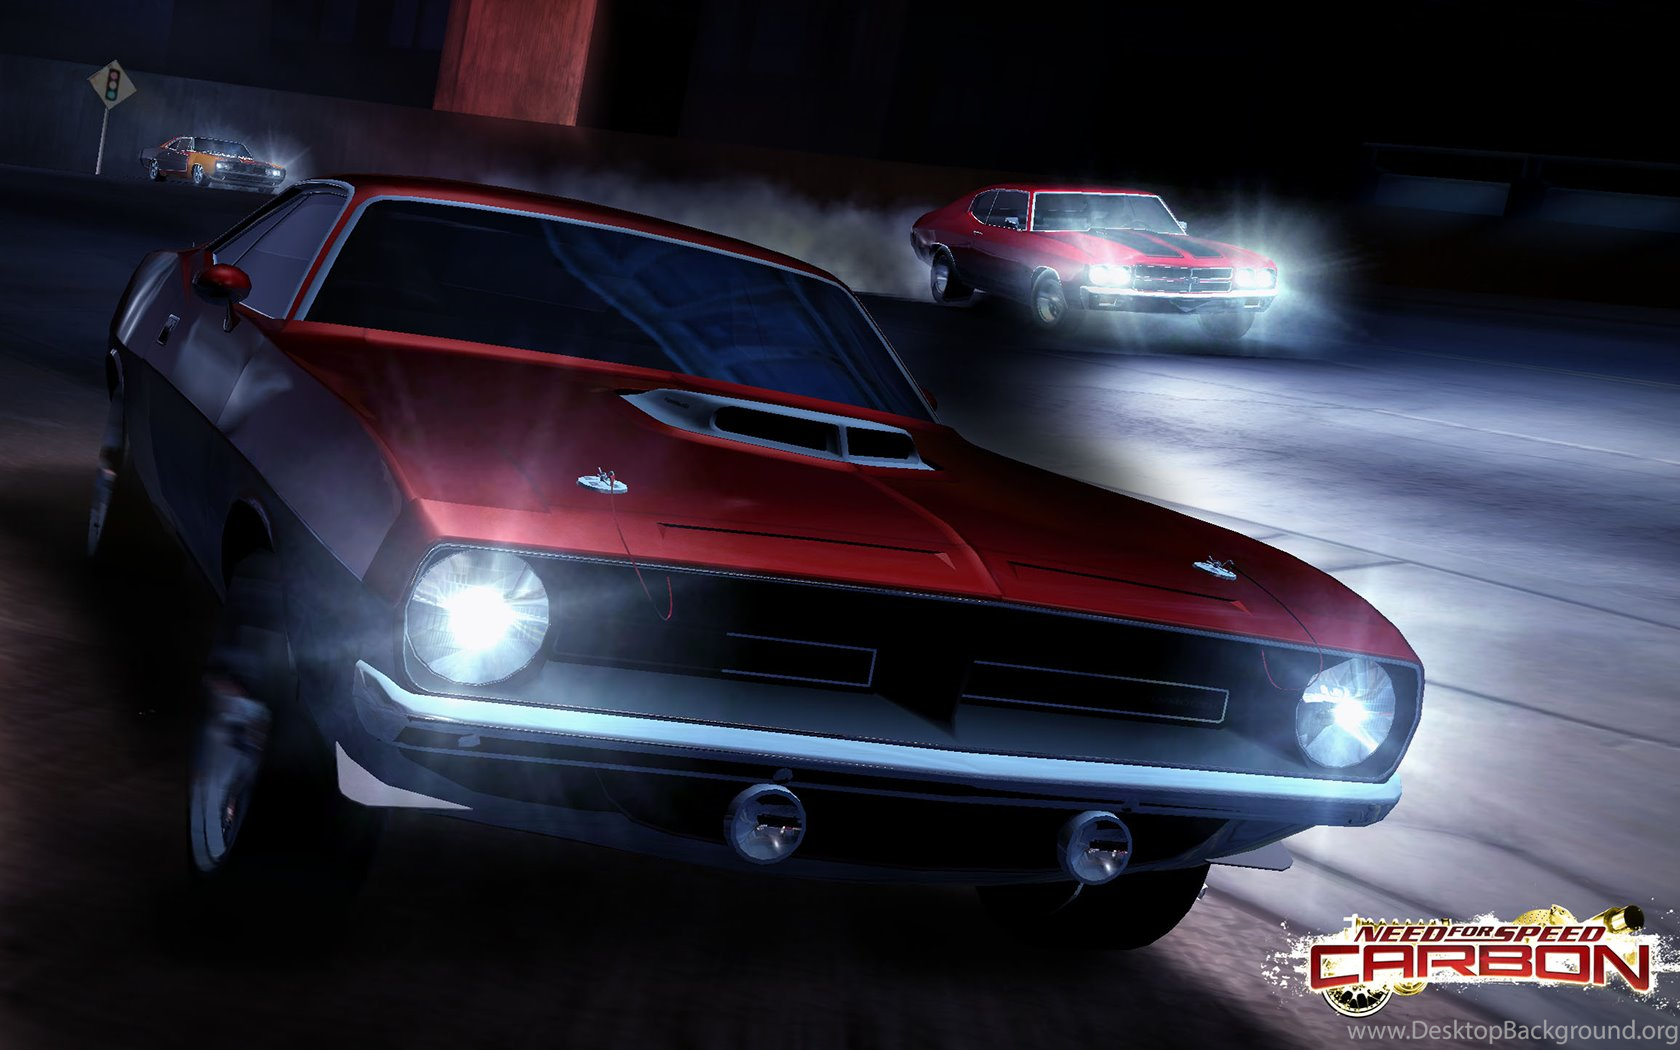 Hemi Cuda Need For Speed Carbon Cars Games Desktop Background